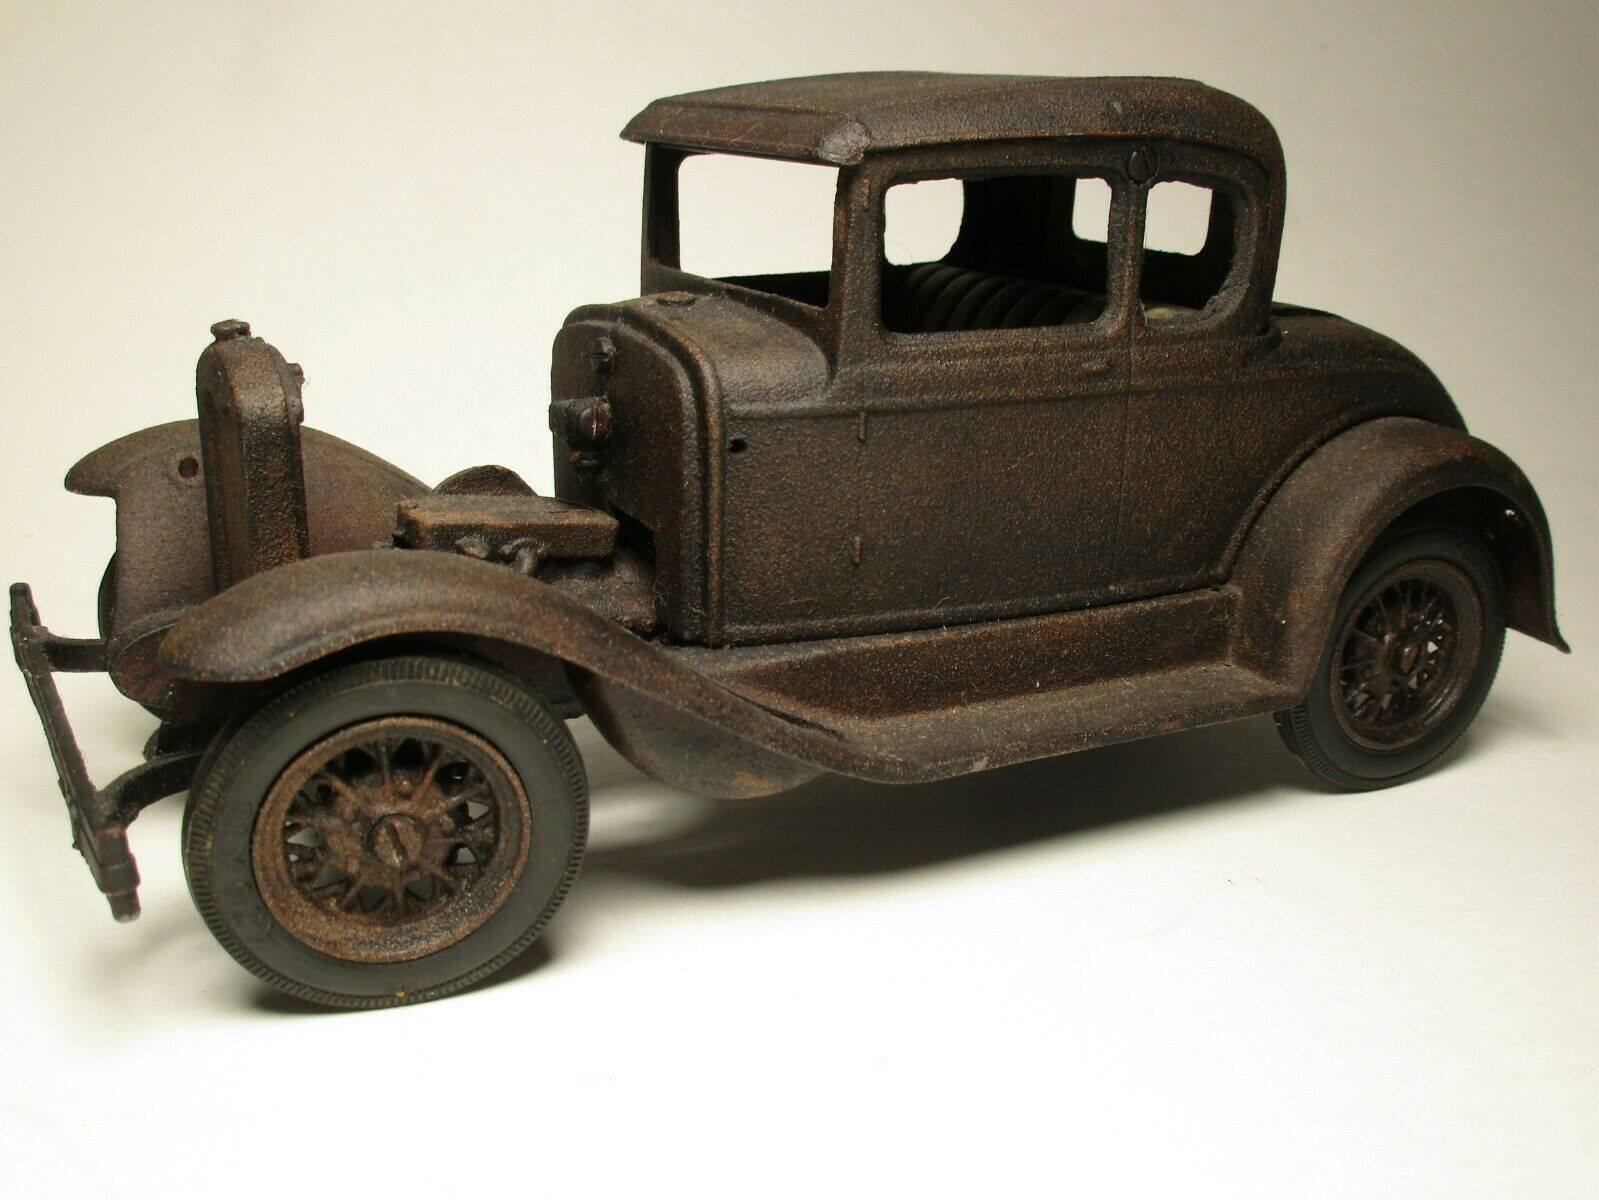 Vintage-Hubley-1932-Ford-Model-A-Coupe-and-Engine---Rusty-Weathered-Barn-Find-6